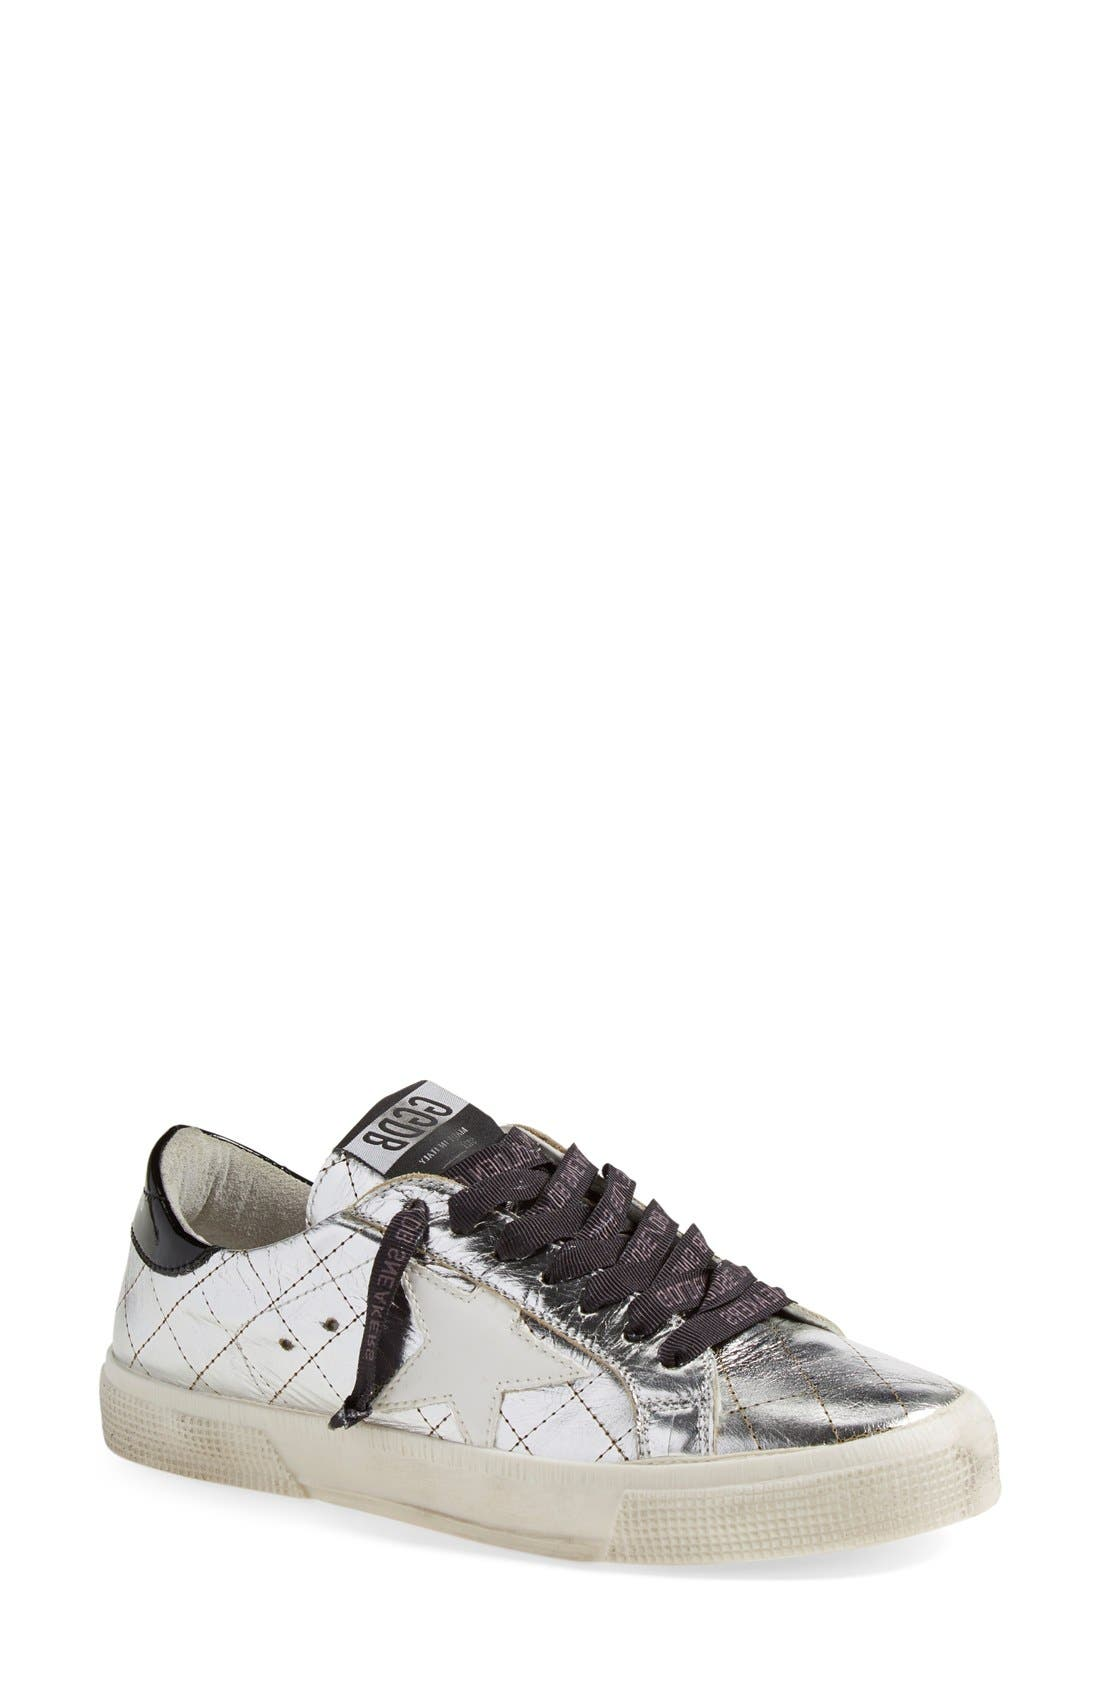 Main Image - Golden Goose 'May' Low Top Sneaker (Women)